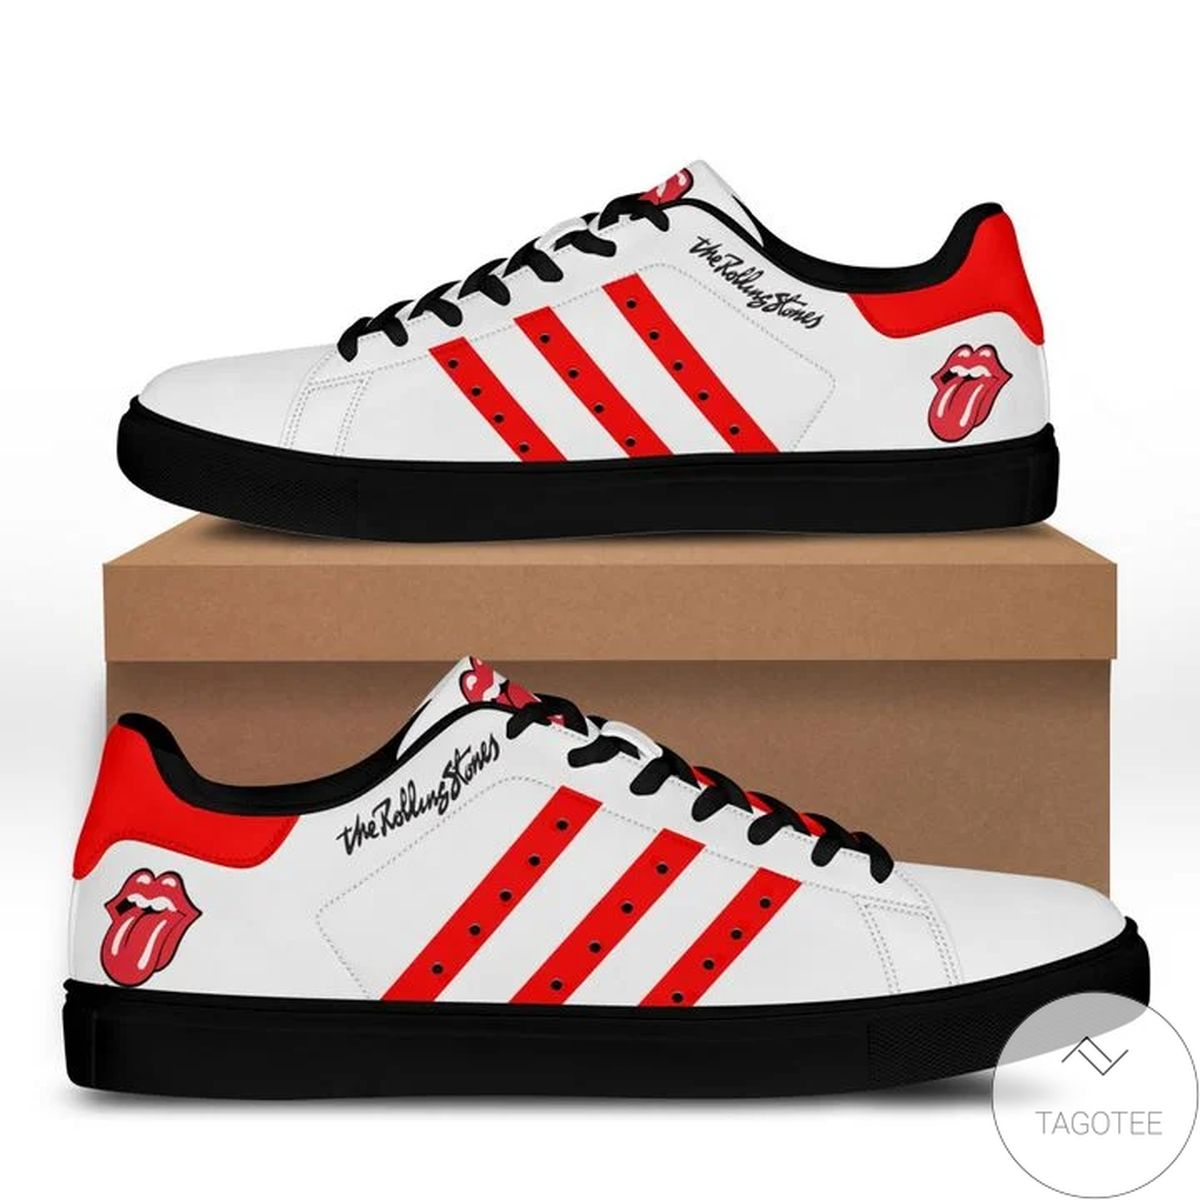 The Rolling Stones Stan Smith Shoes